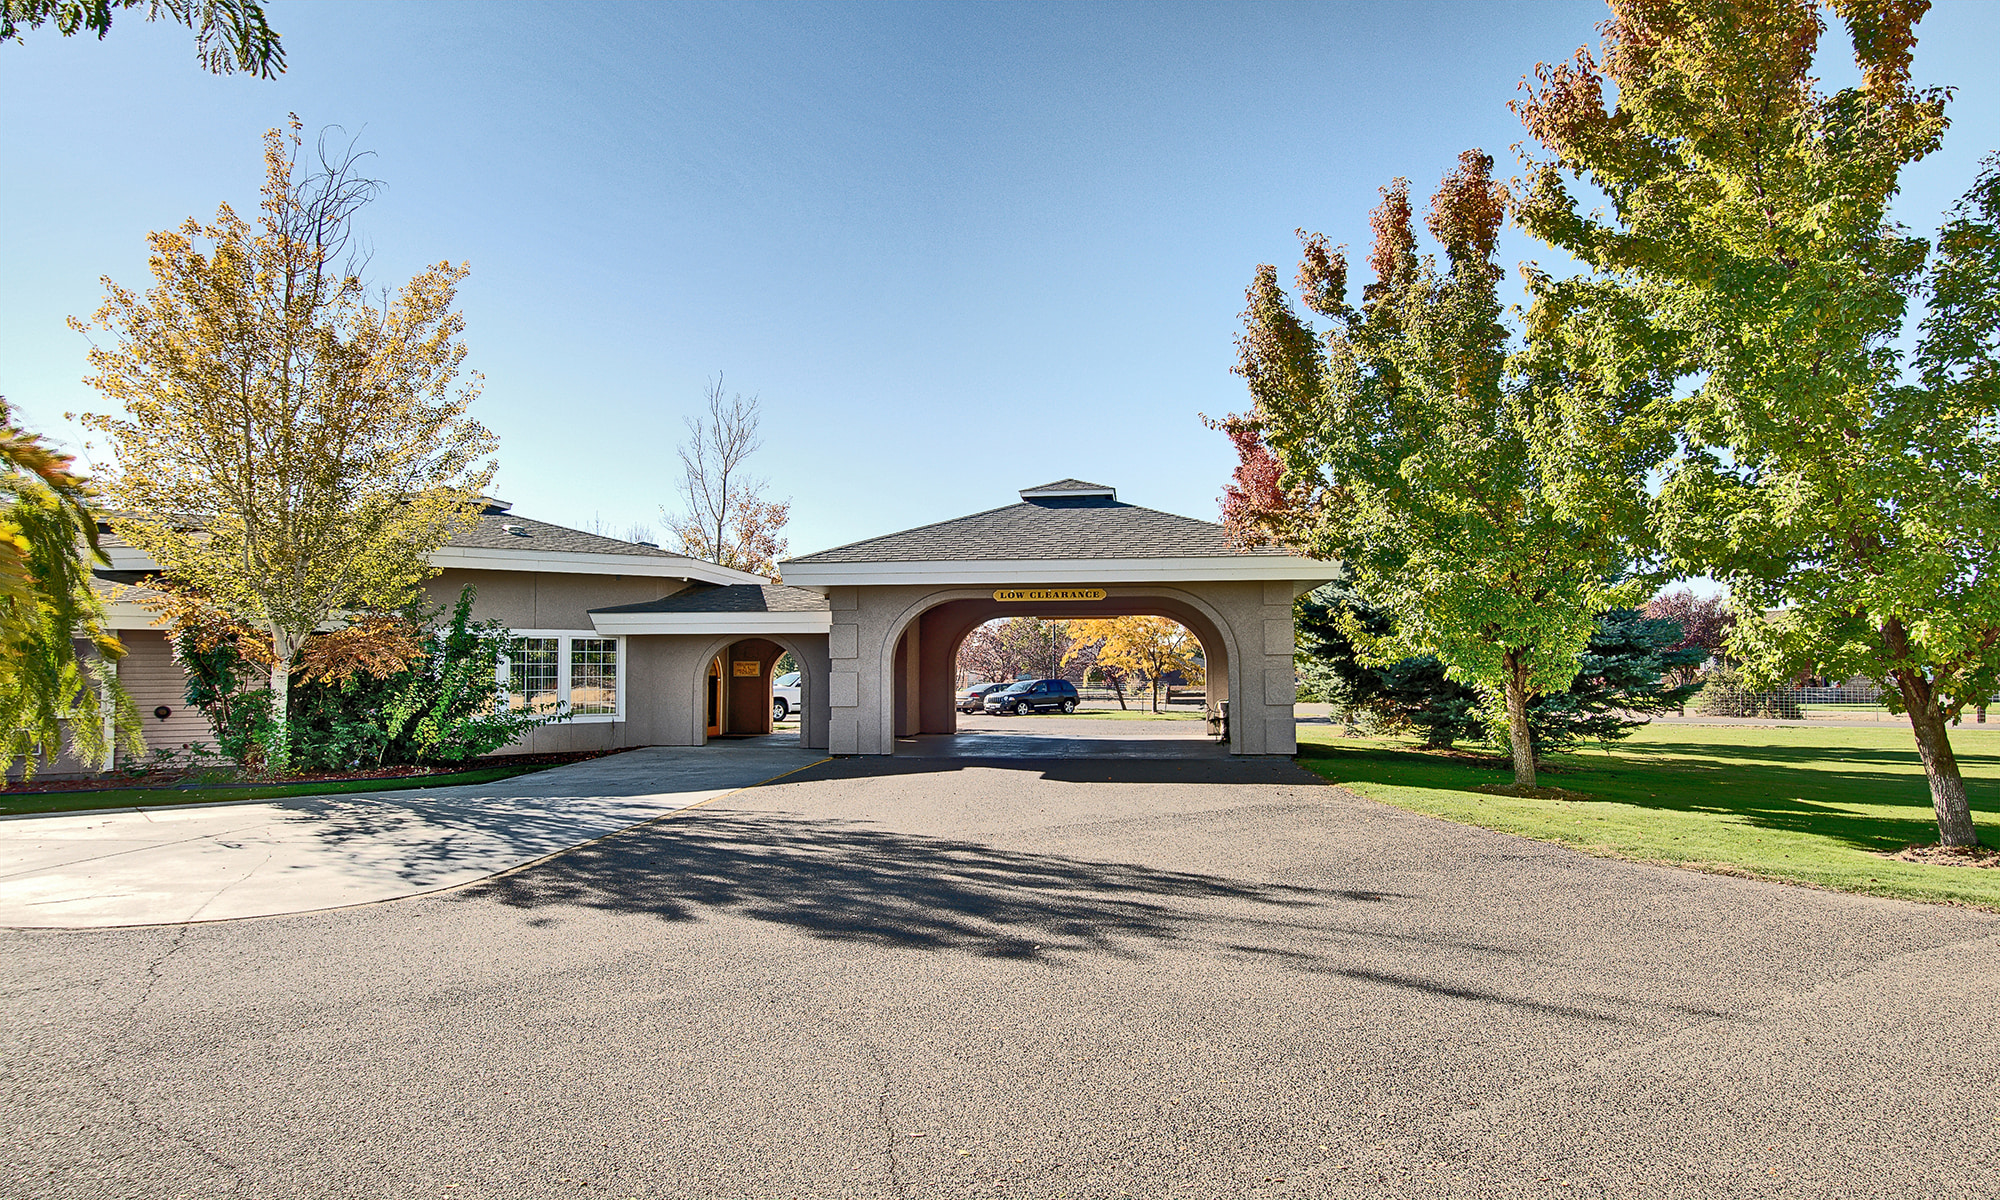 Senior living in Ontario, OR